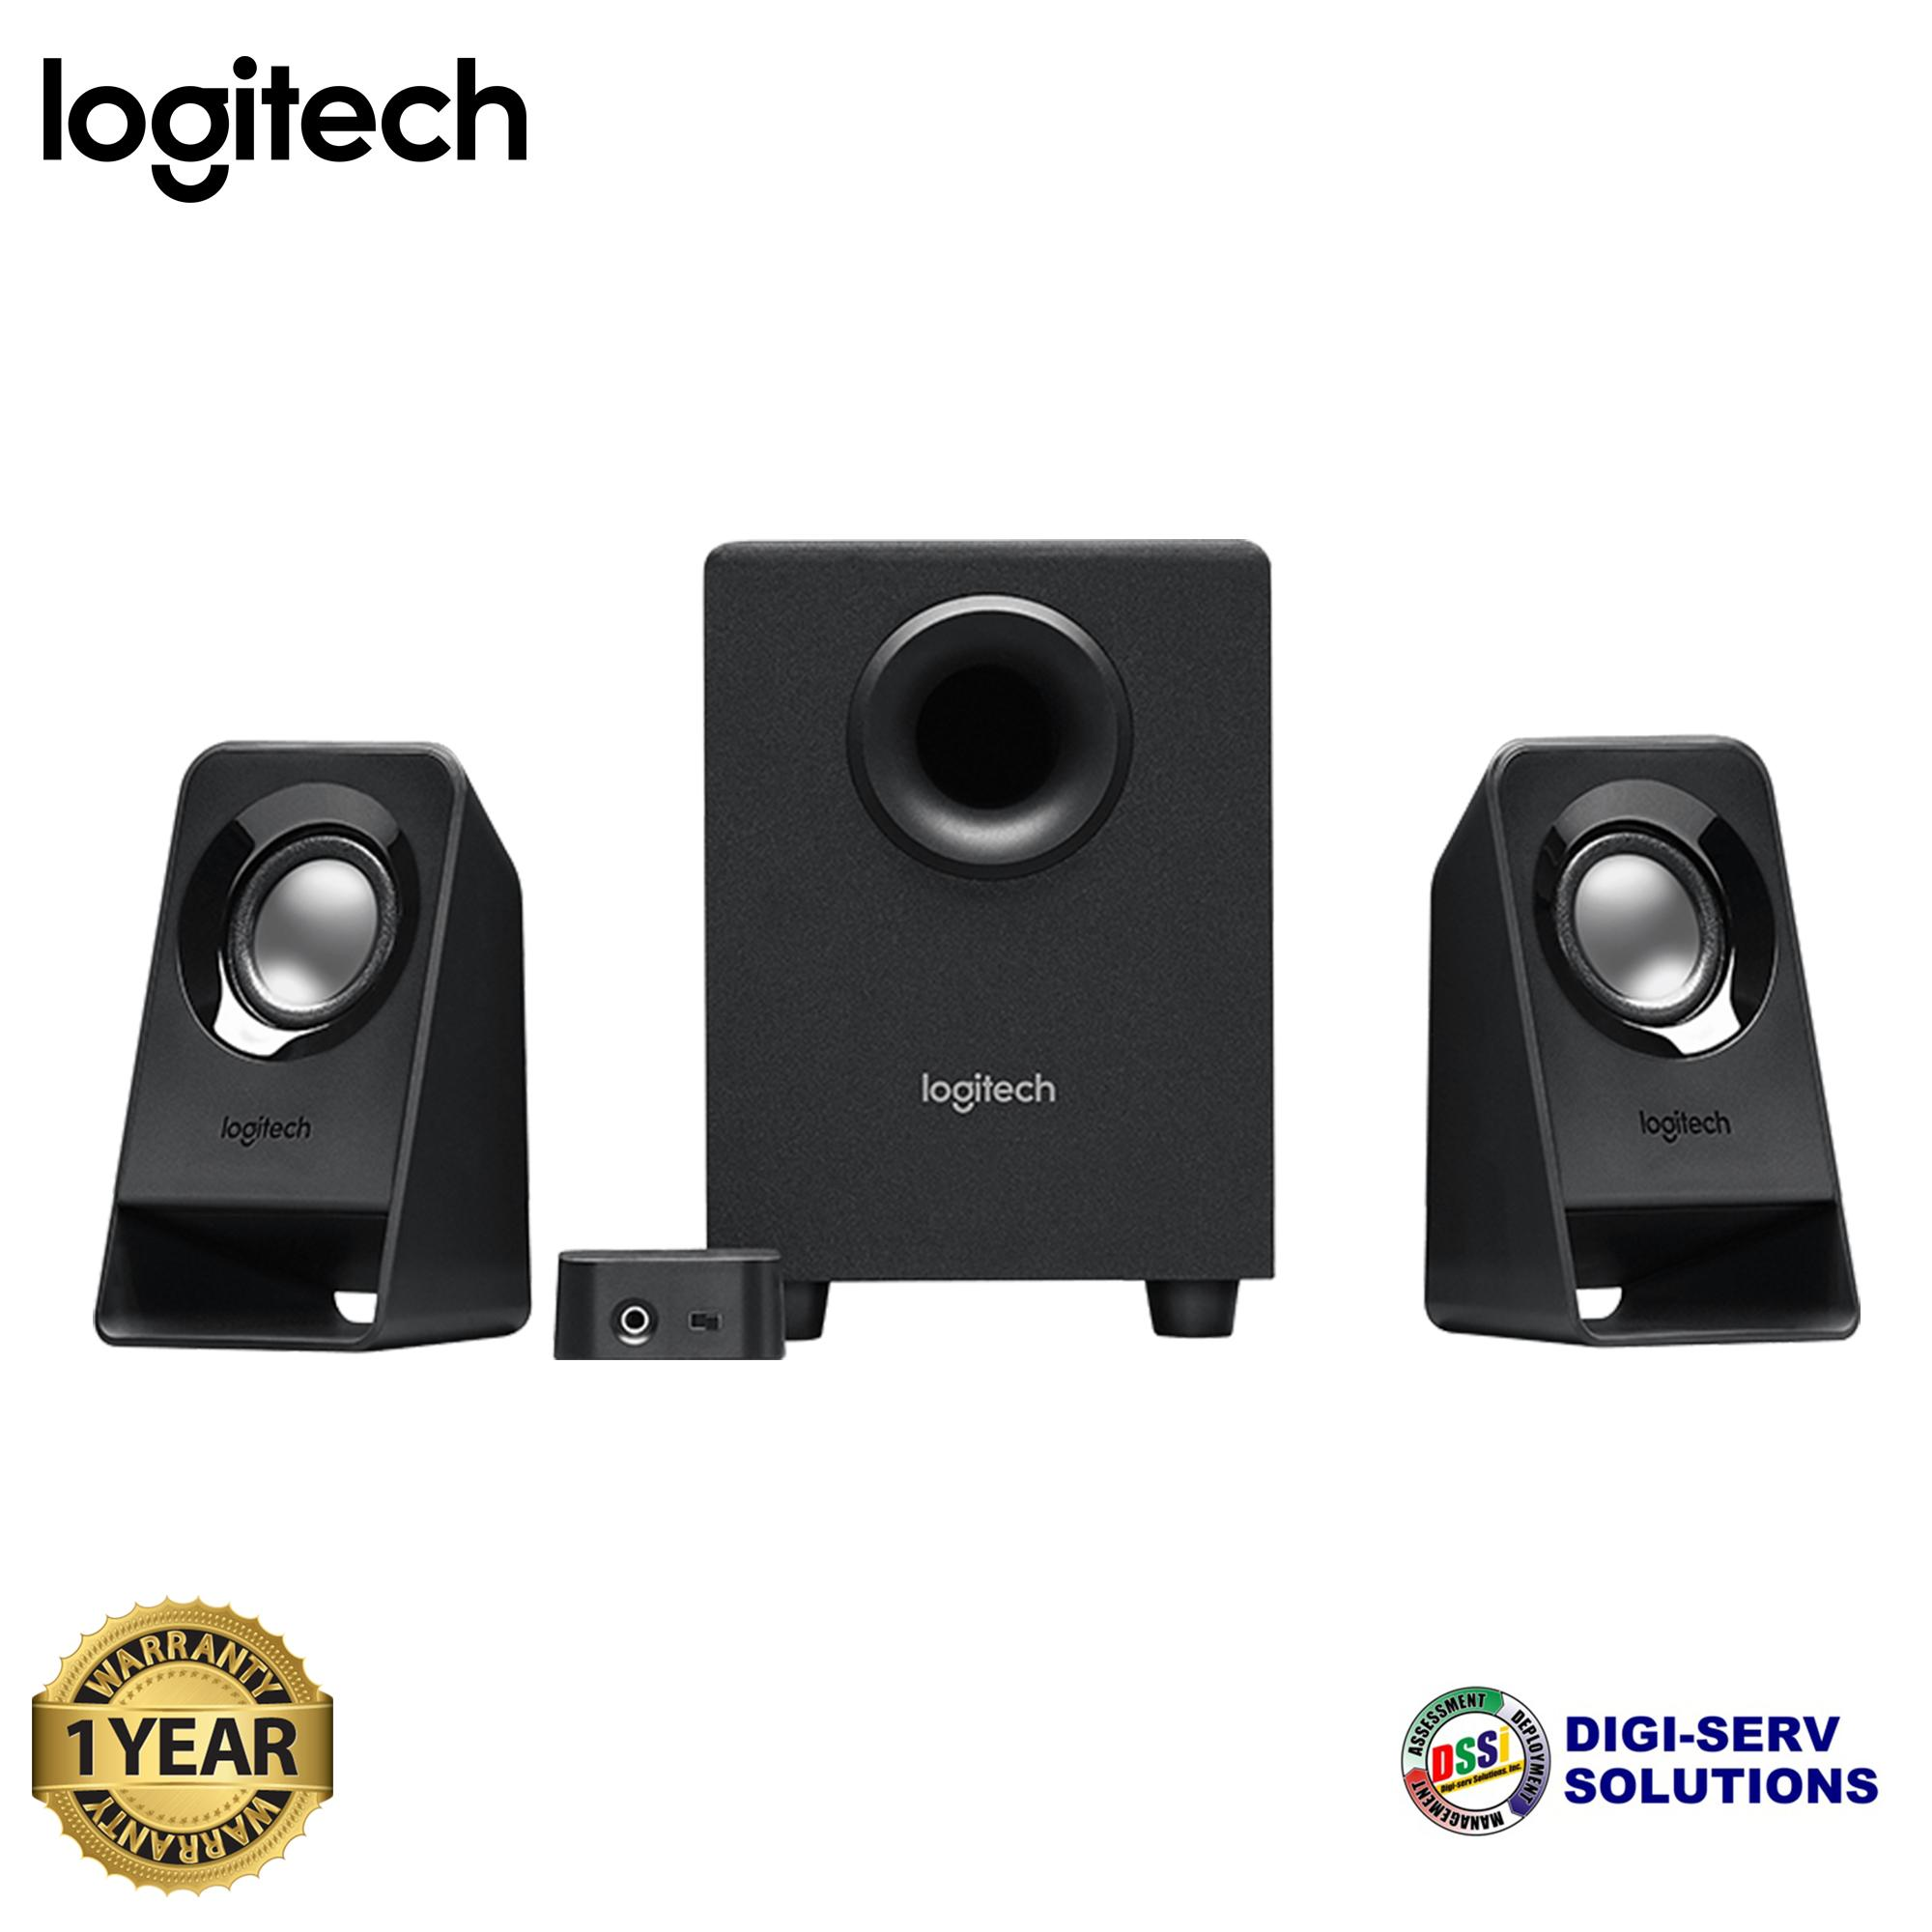 af868a22cf8 Logitech Z213 Compact Speaker System For Your Desktop Laptop Speakers  (Black)